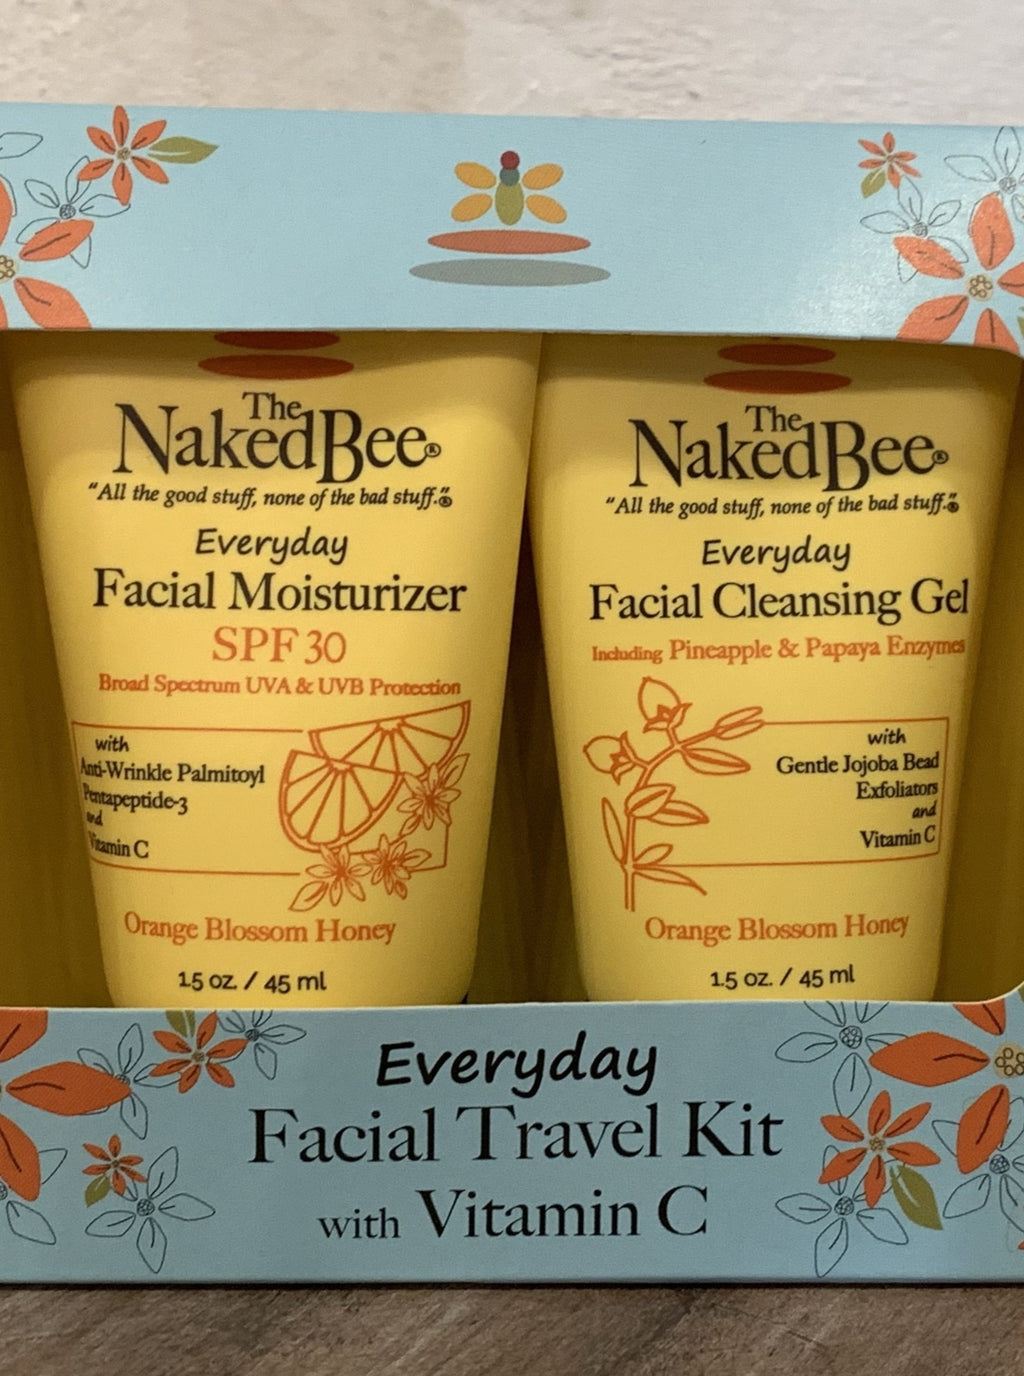 Naked Bee Facial Travel Kit